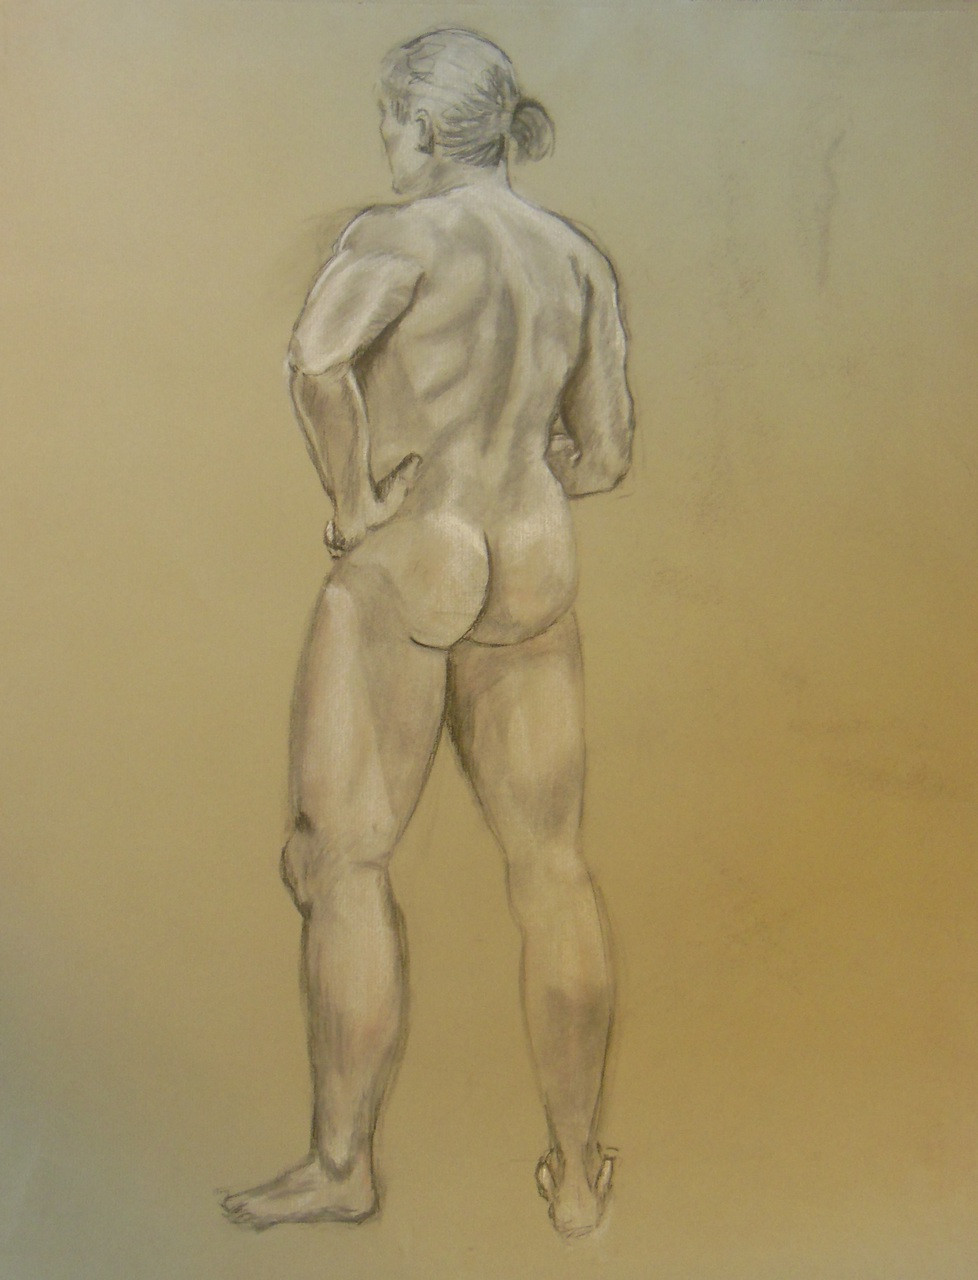 Nude Drawing: Charcoal & pastel on grey paper. 04